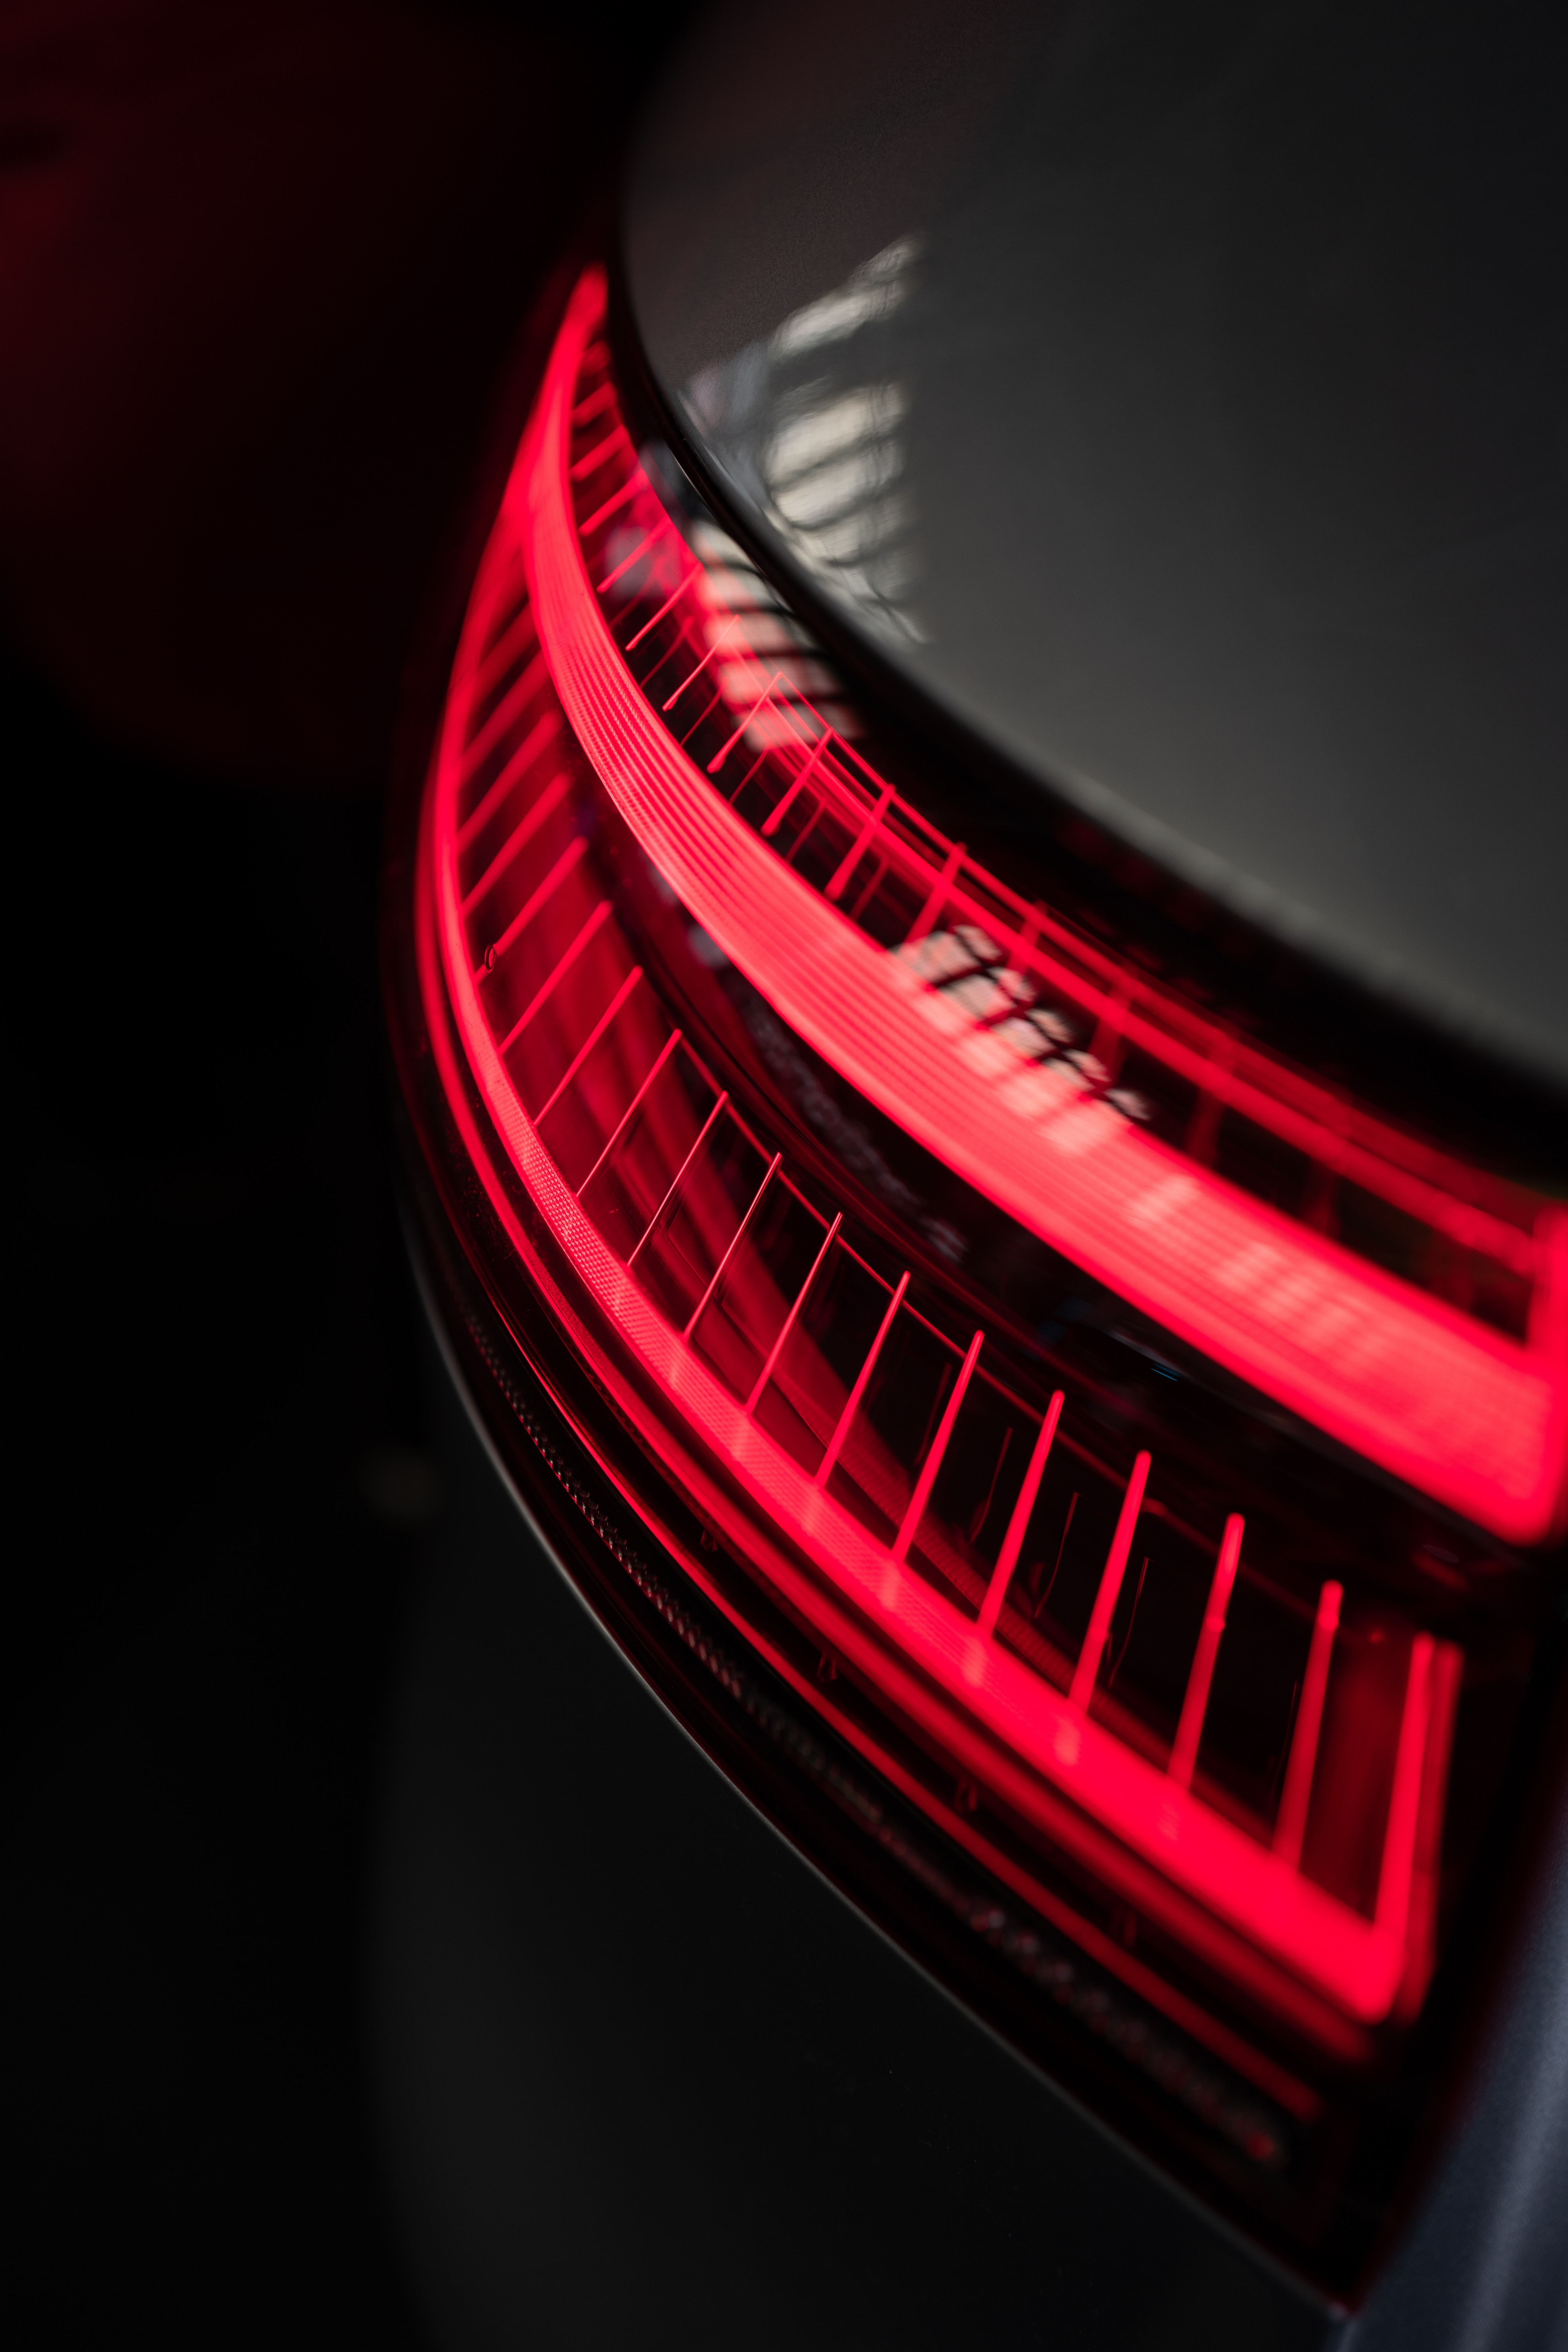 65760 download wallpaper Miscellanea, Miscellaneous, Lamp, Lantern, Back Light, Taillight, Optics, Close-Up, Car screensavers and pictures for free